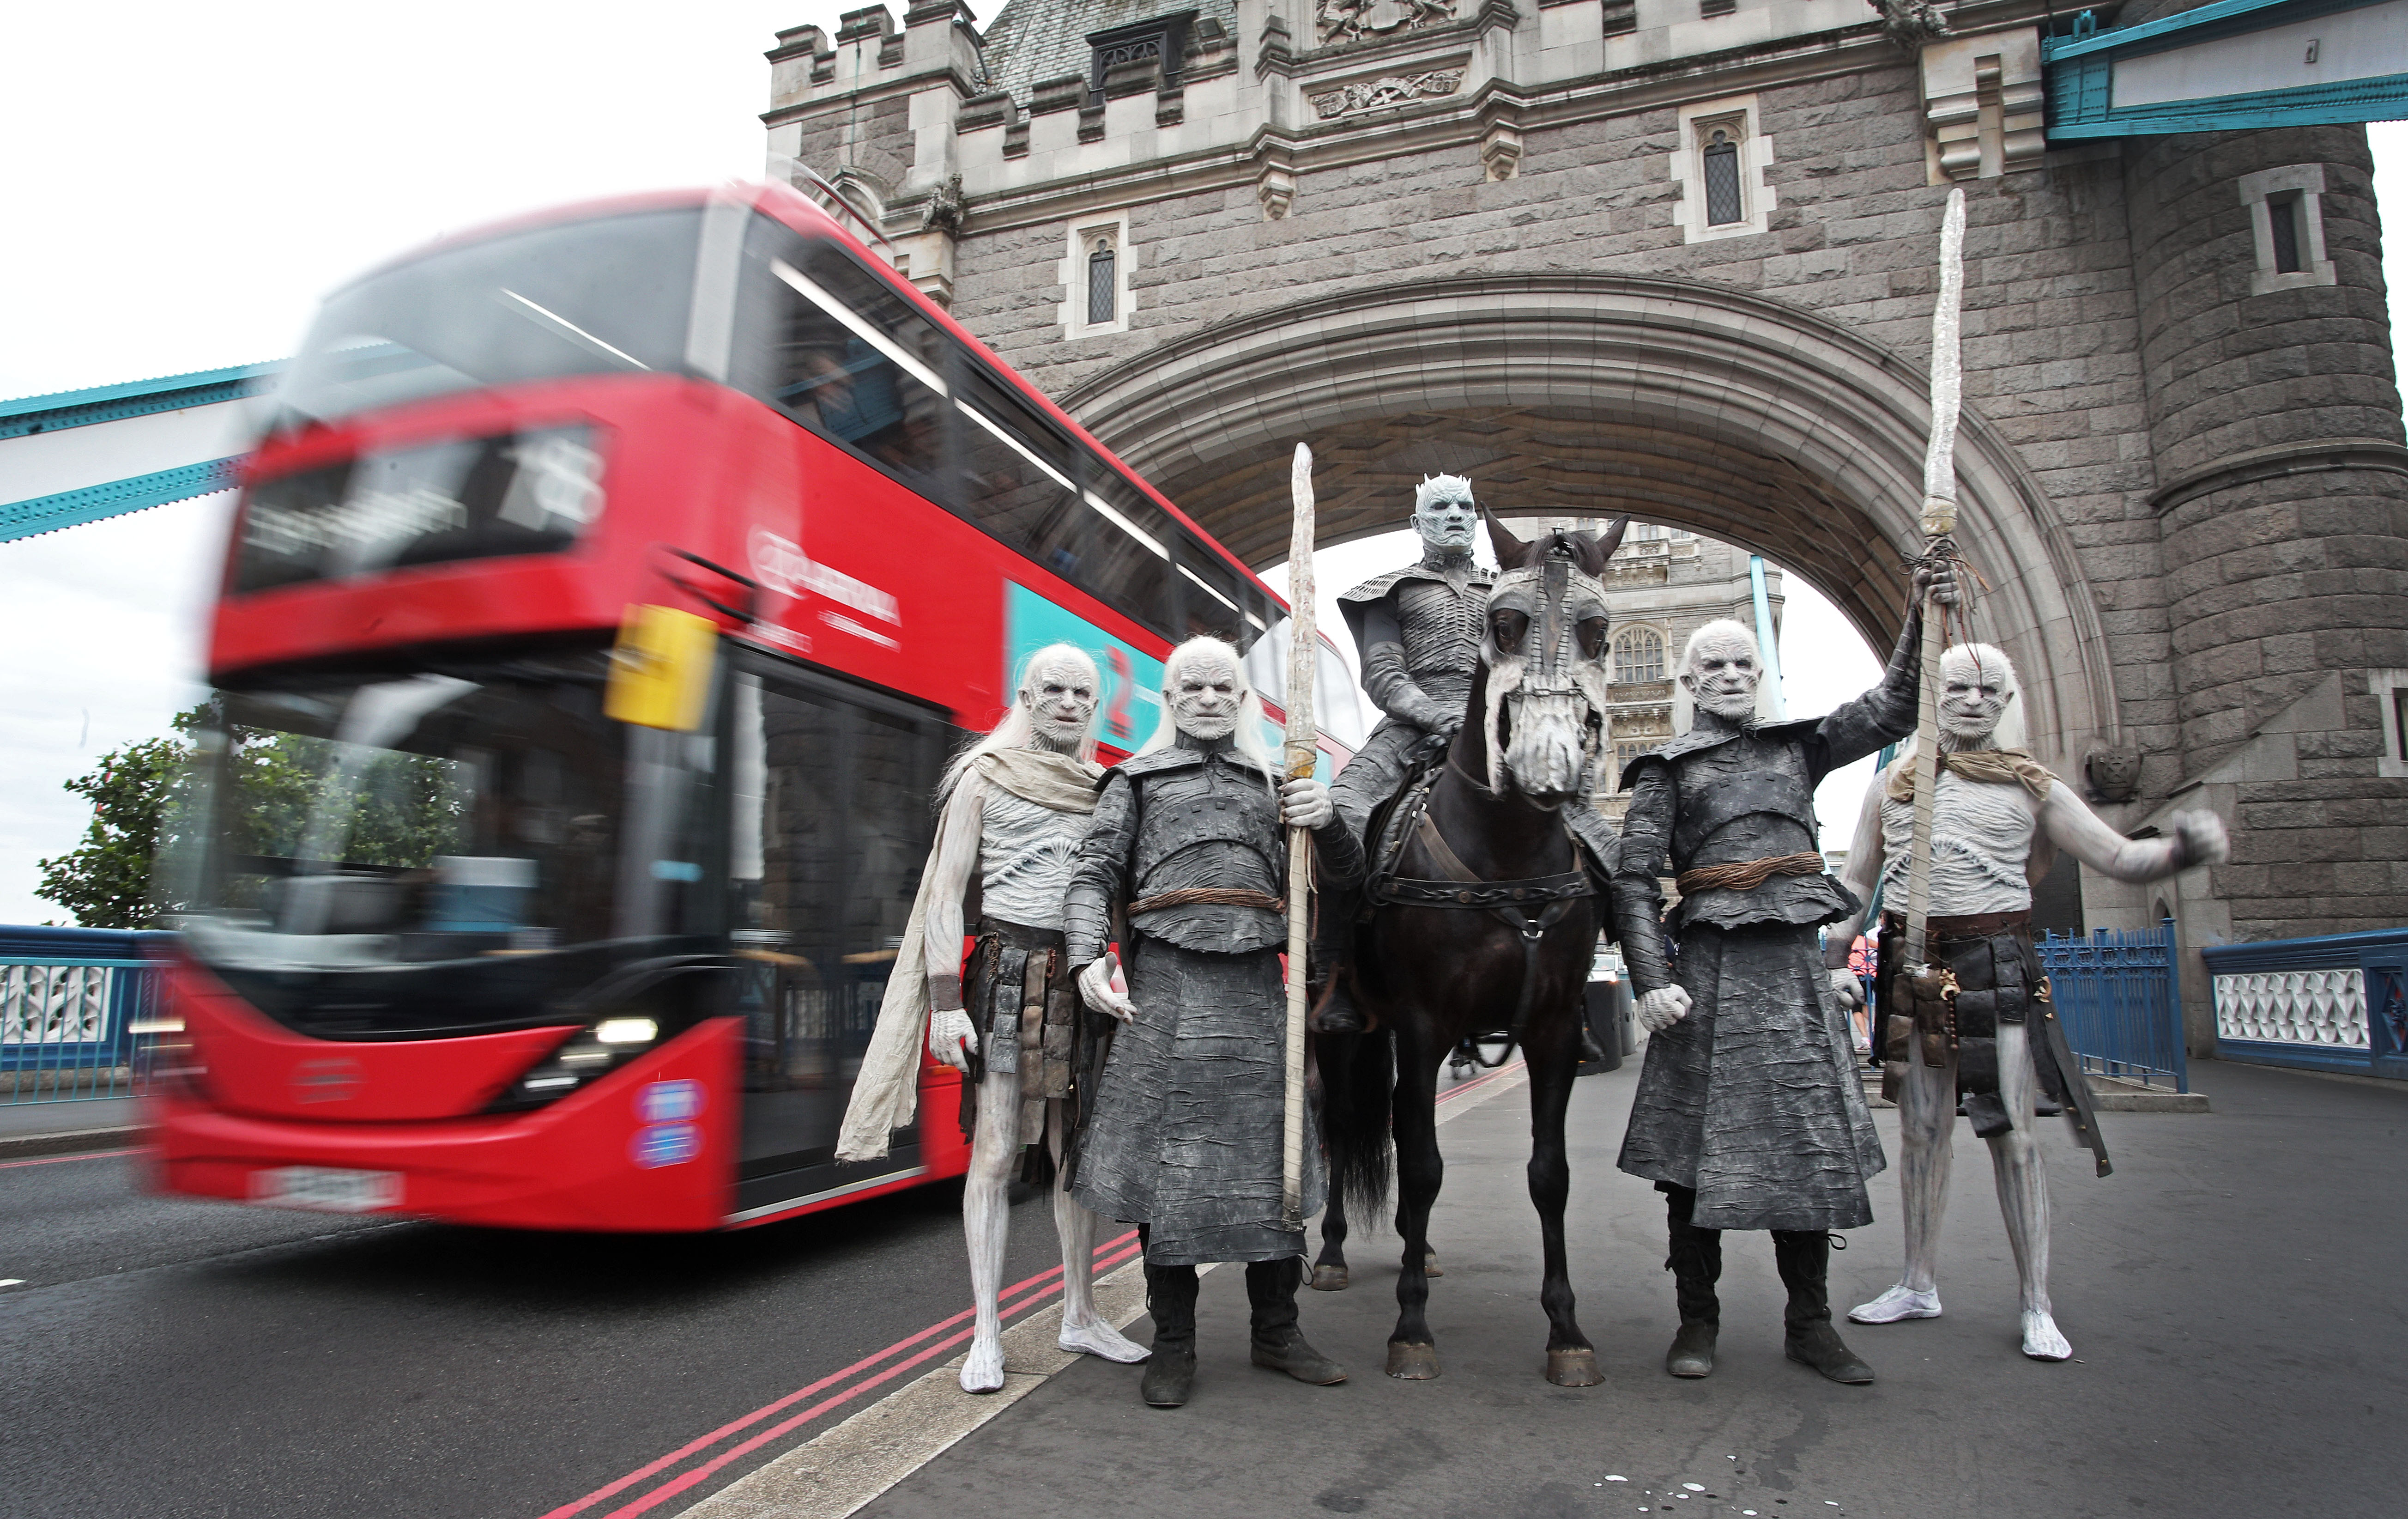 Five models dressed as 'White Walkers' from Game of Thrones, led by the 'Night King' on horseback, pass by The Tower of London in London